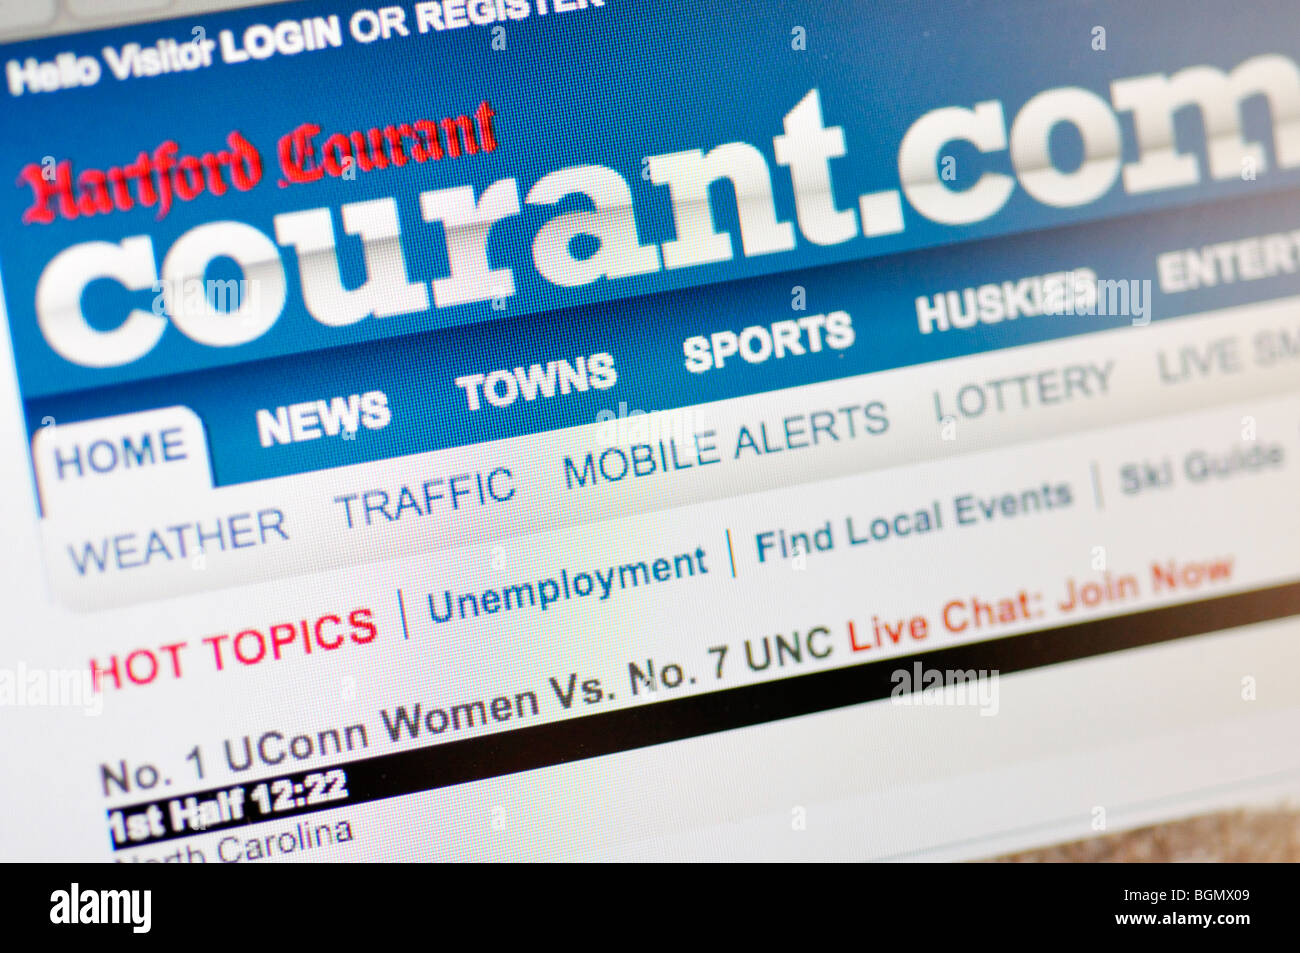 The Hartford Courant website Stock Photo: 27504297 - Alamy